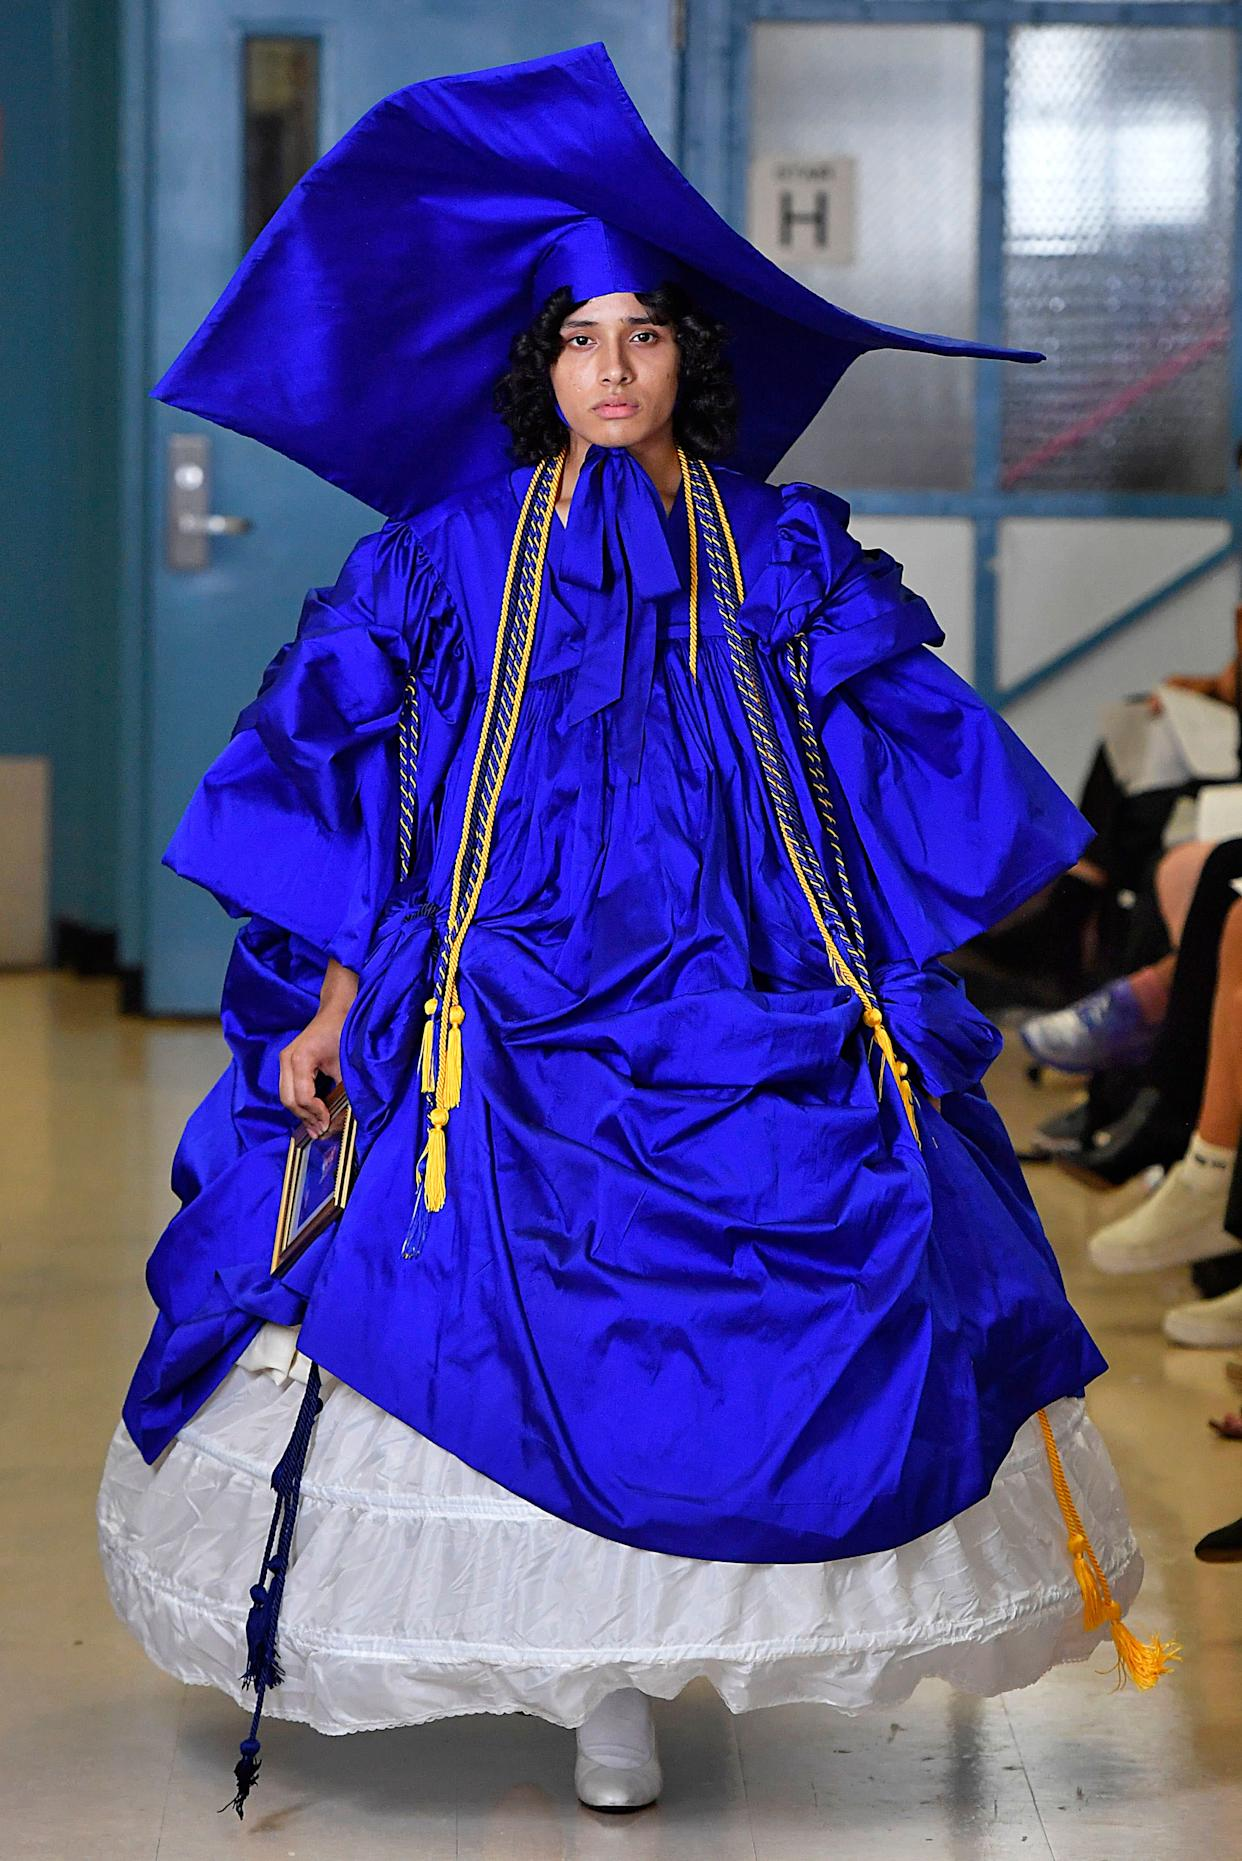 According to the Vaquera show, which took place on Sept. 11, mortarboards (a.k.a. graduation caps) of epic proportions are an it accessory for spring 2019.